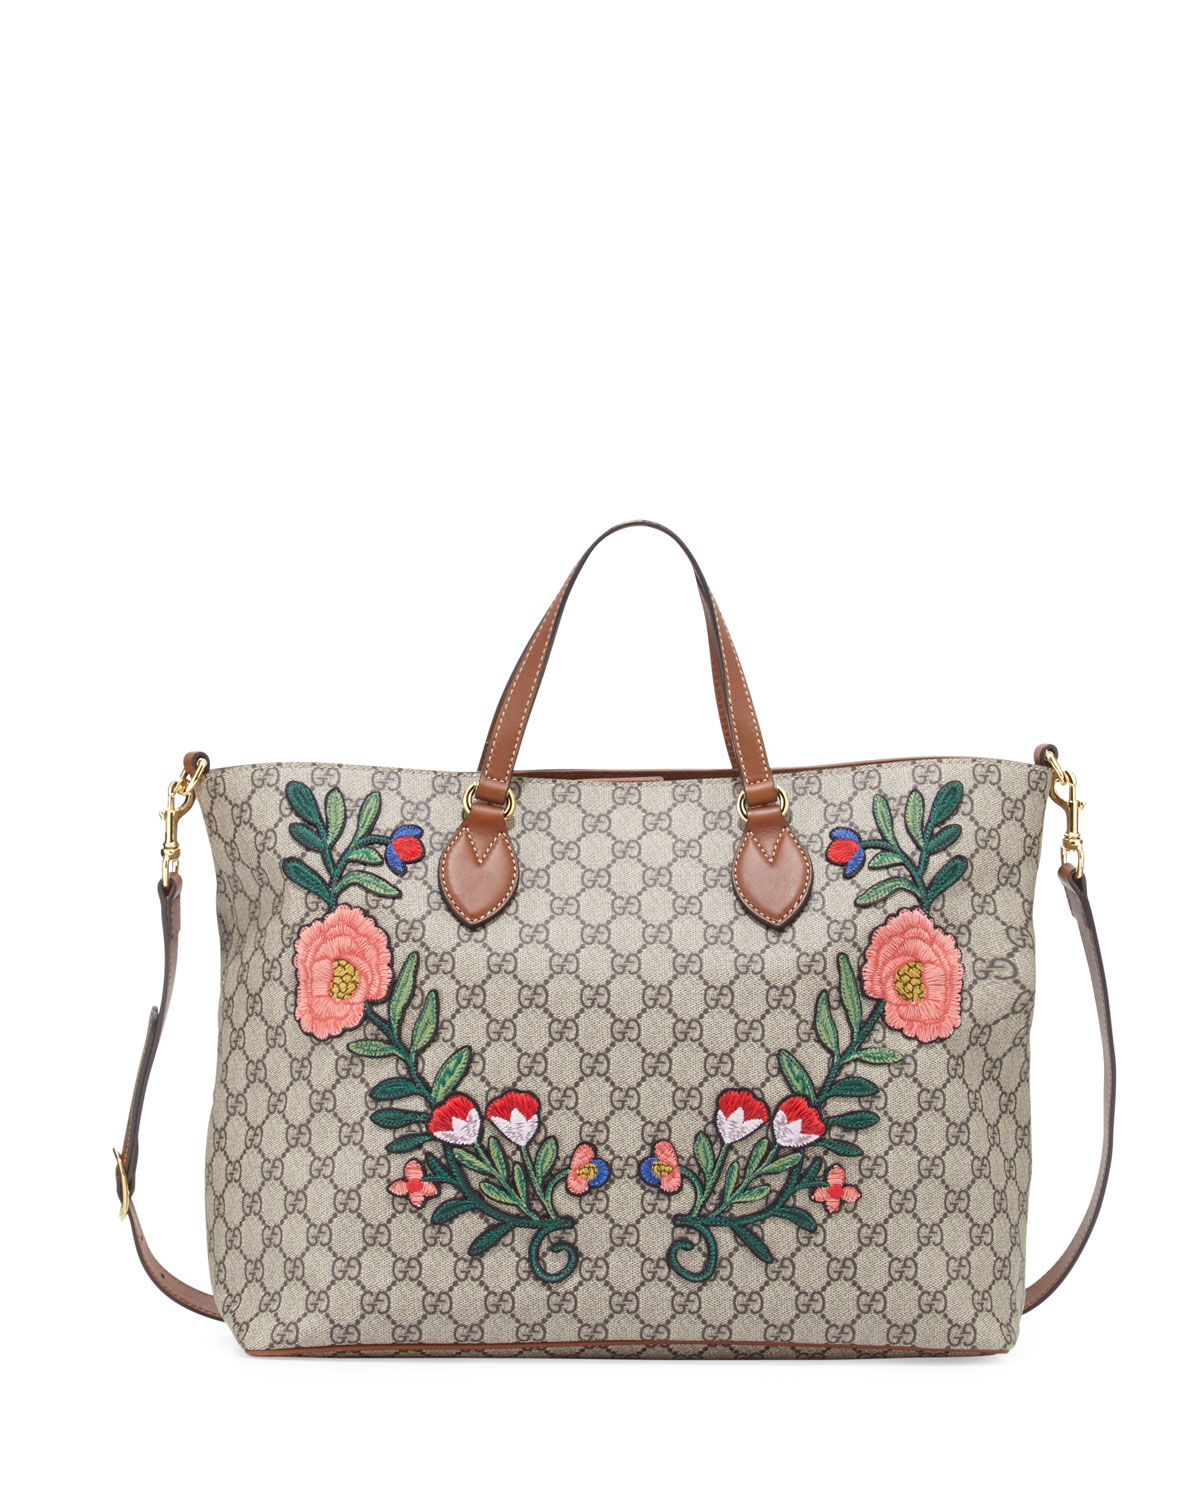 Gucci Resort 2017 Bag Collection | Page 2 Of 3 | Spotted Fashion